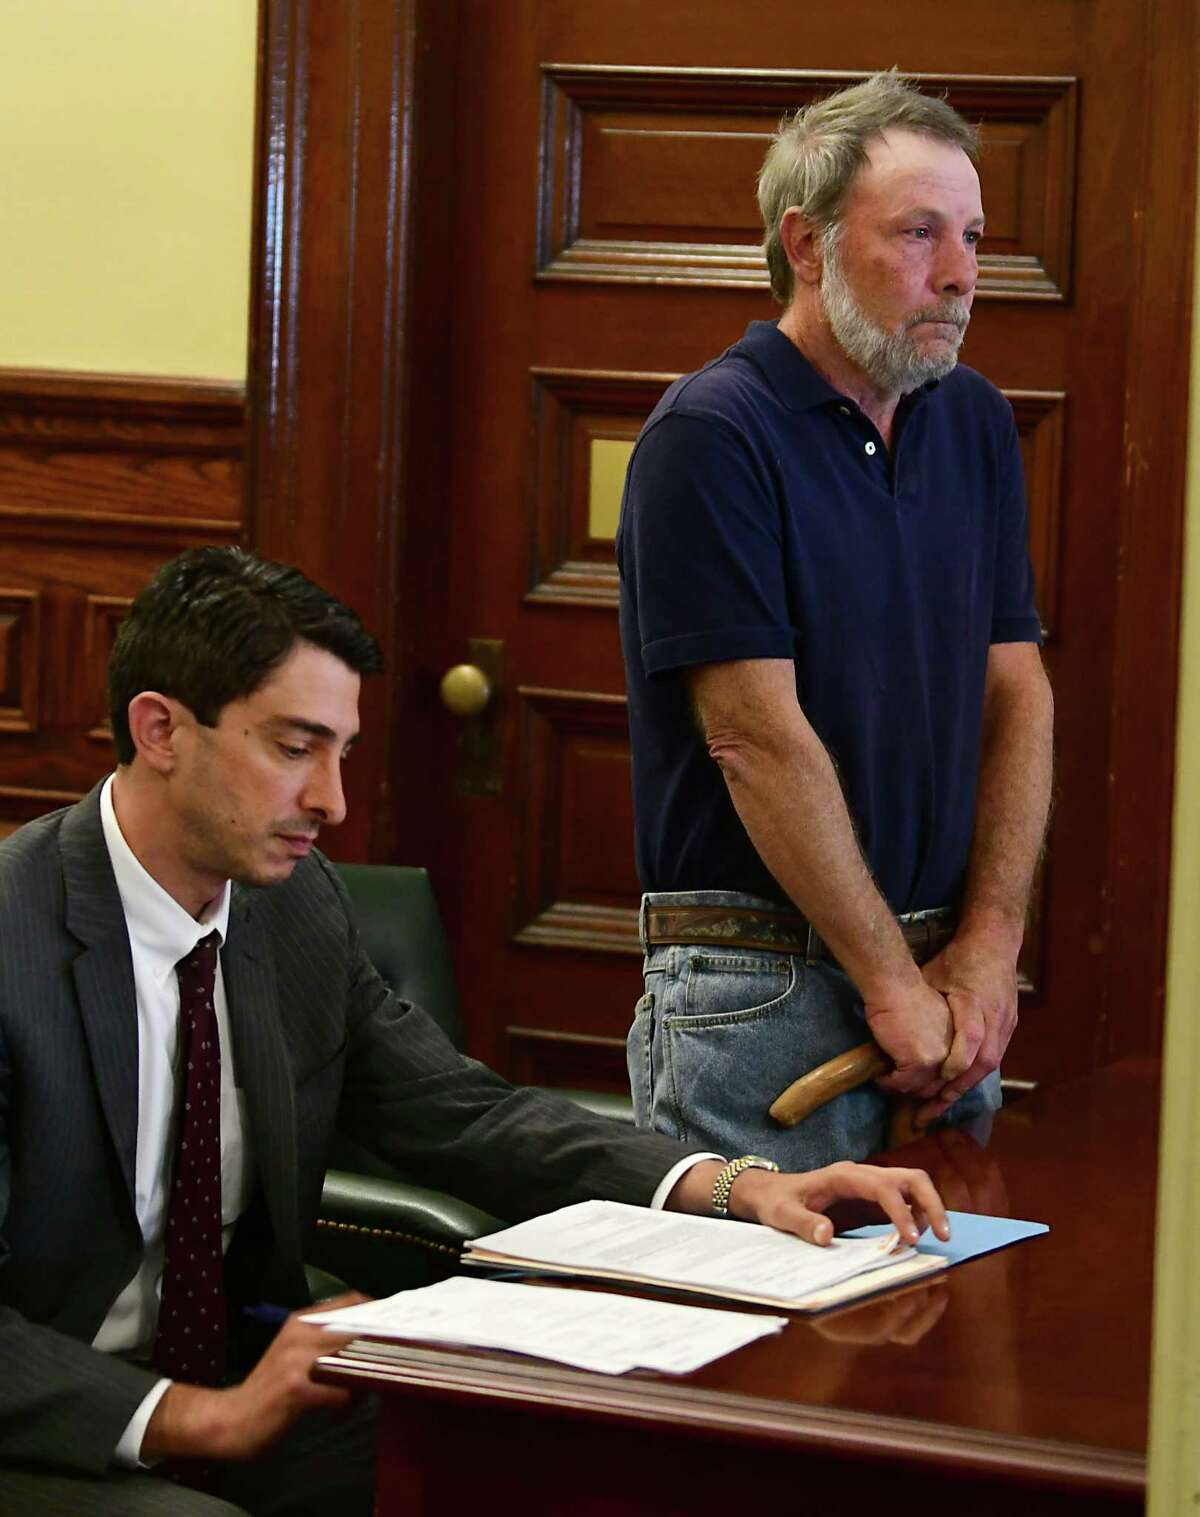 Robert King, right, stands before the judge next to his attorney Justin deArmas as state Supreme Court Justice Patrick McGrath holds a hearing to determine if King of Stephentown posses a risk to himself after or others after allegedly firing a weapon and threatening suicide during a Sept. 4 confrontation with a neighbor. (Lori Van Buren/Times Union)